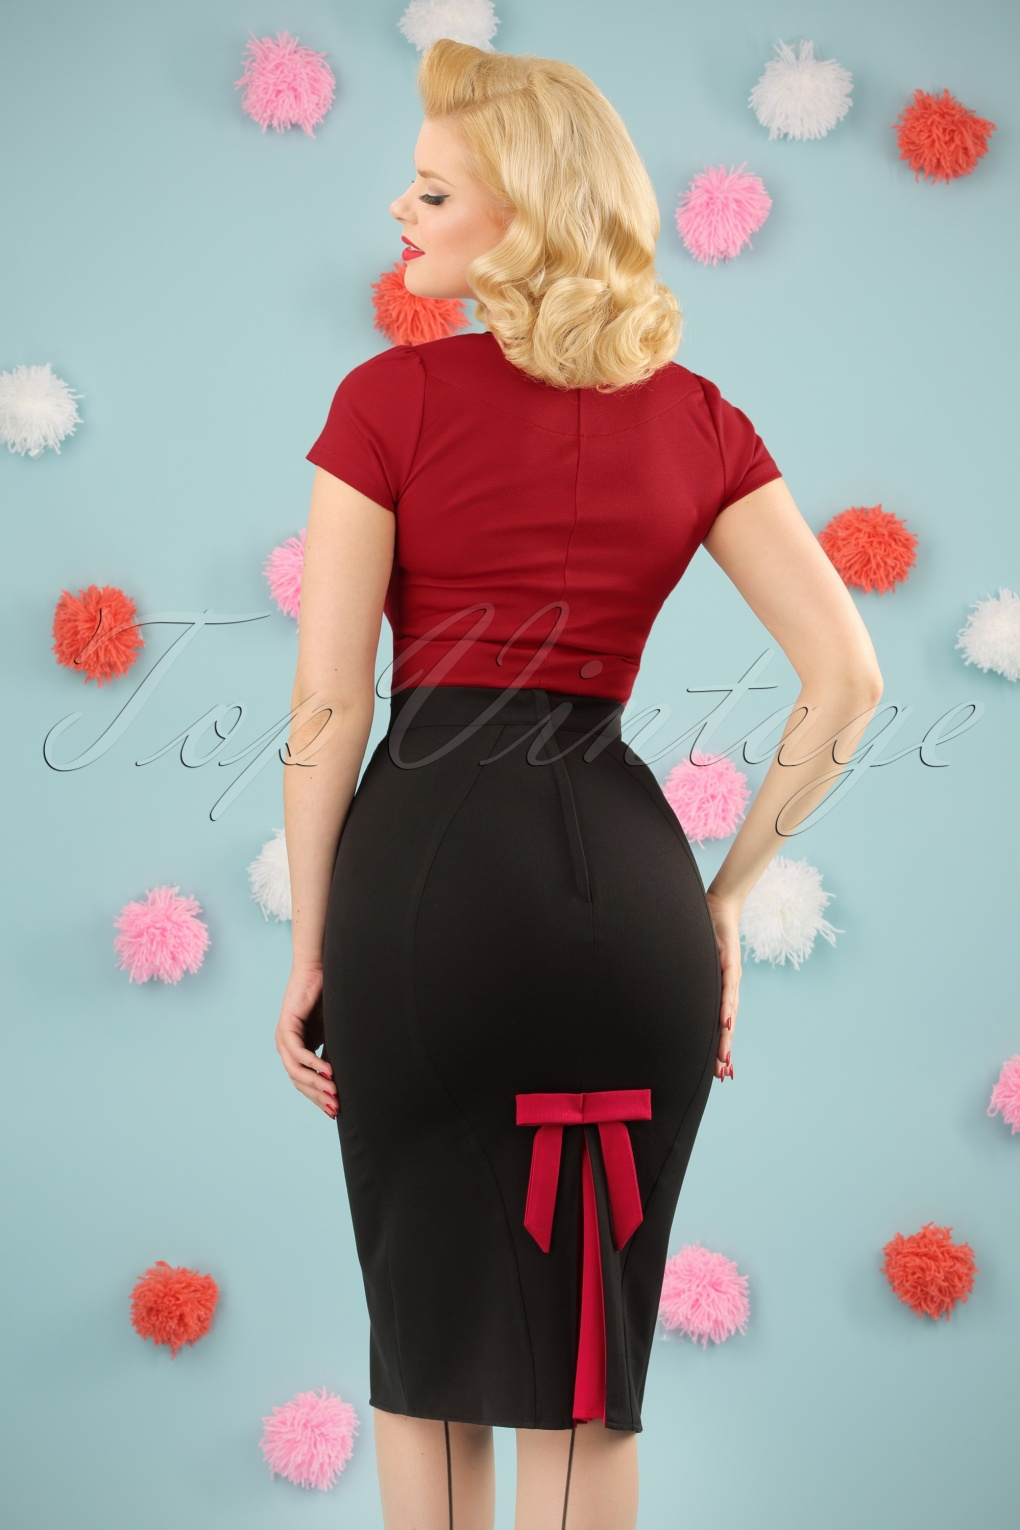 500 Vintage Style Dresses for Sale TopVintage Exclusive  50s Frances Bow Pencil Skirt in Black and Red £50.31 AT vintagedancer.com